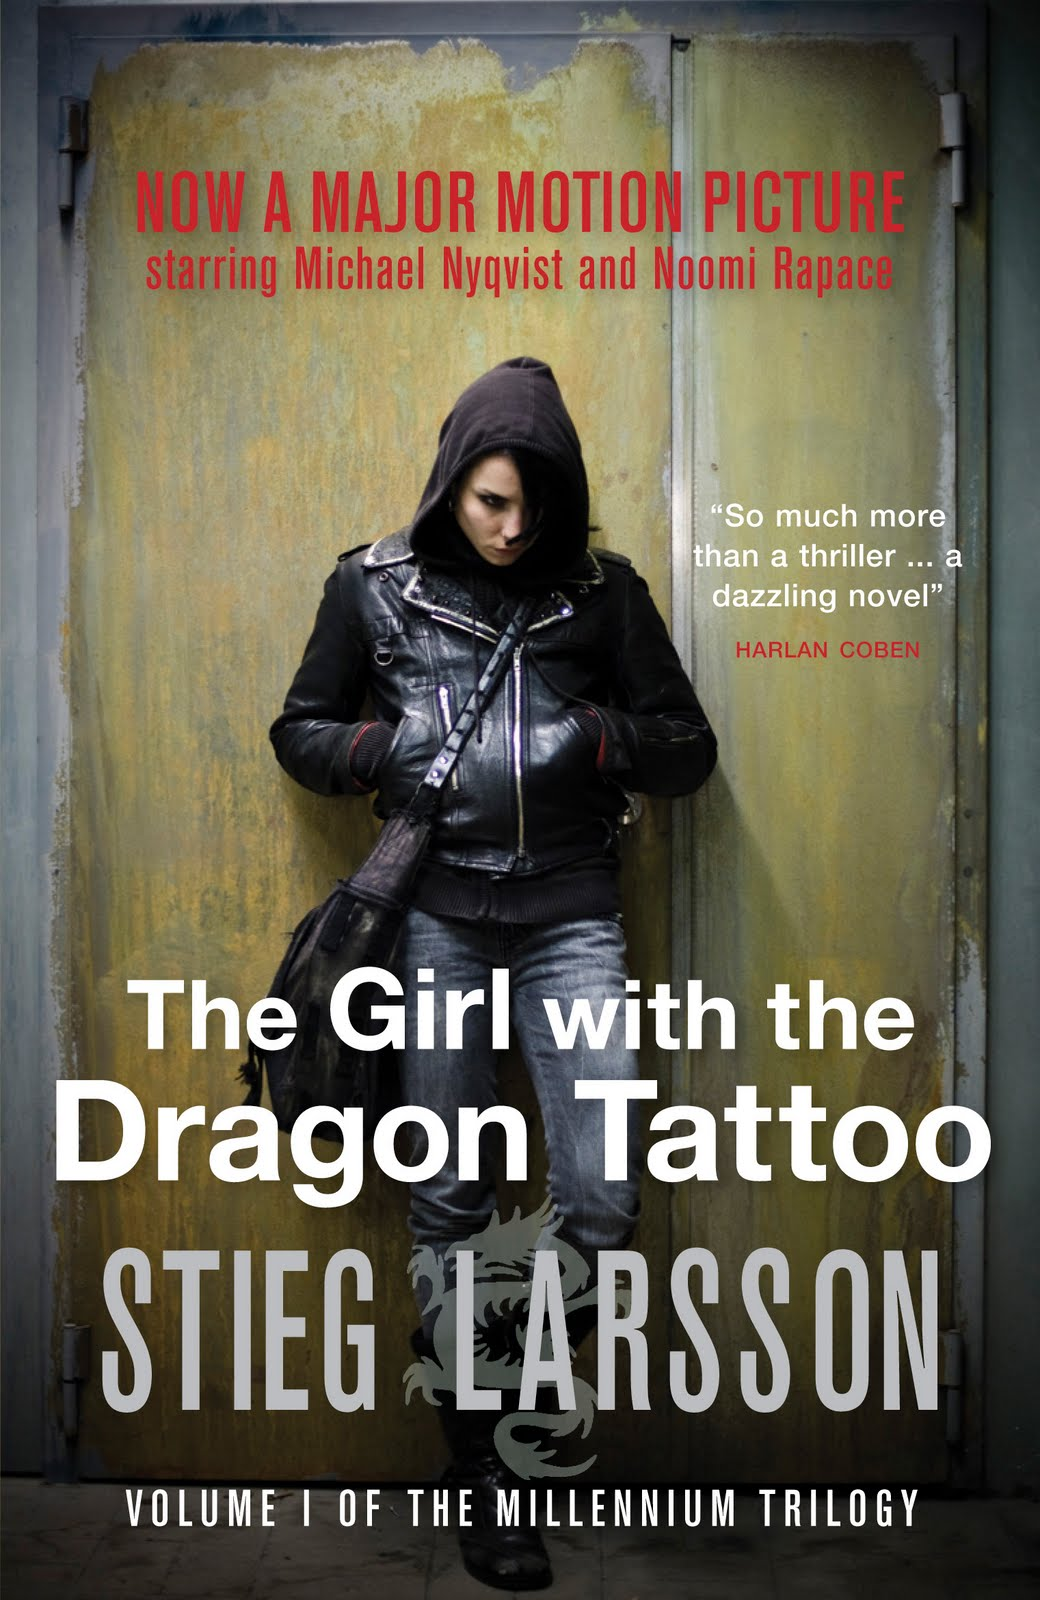 The Girl with the Dragon Tattoo - America